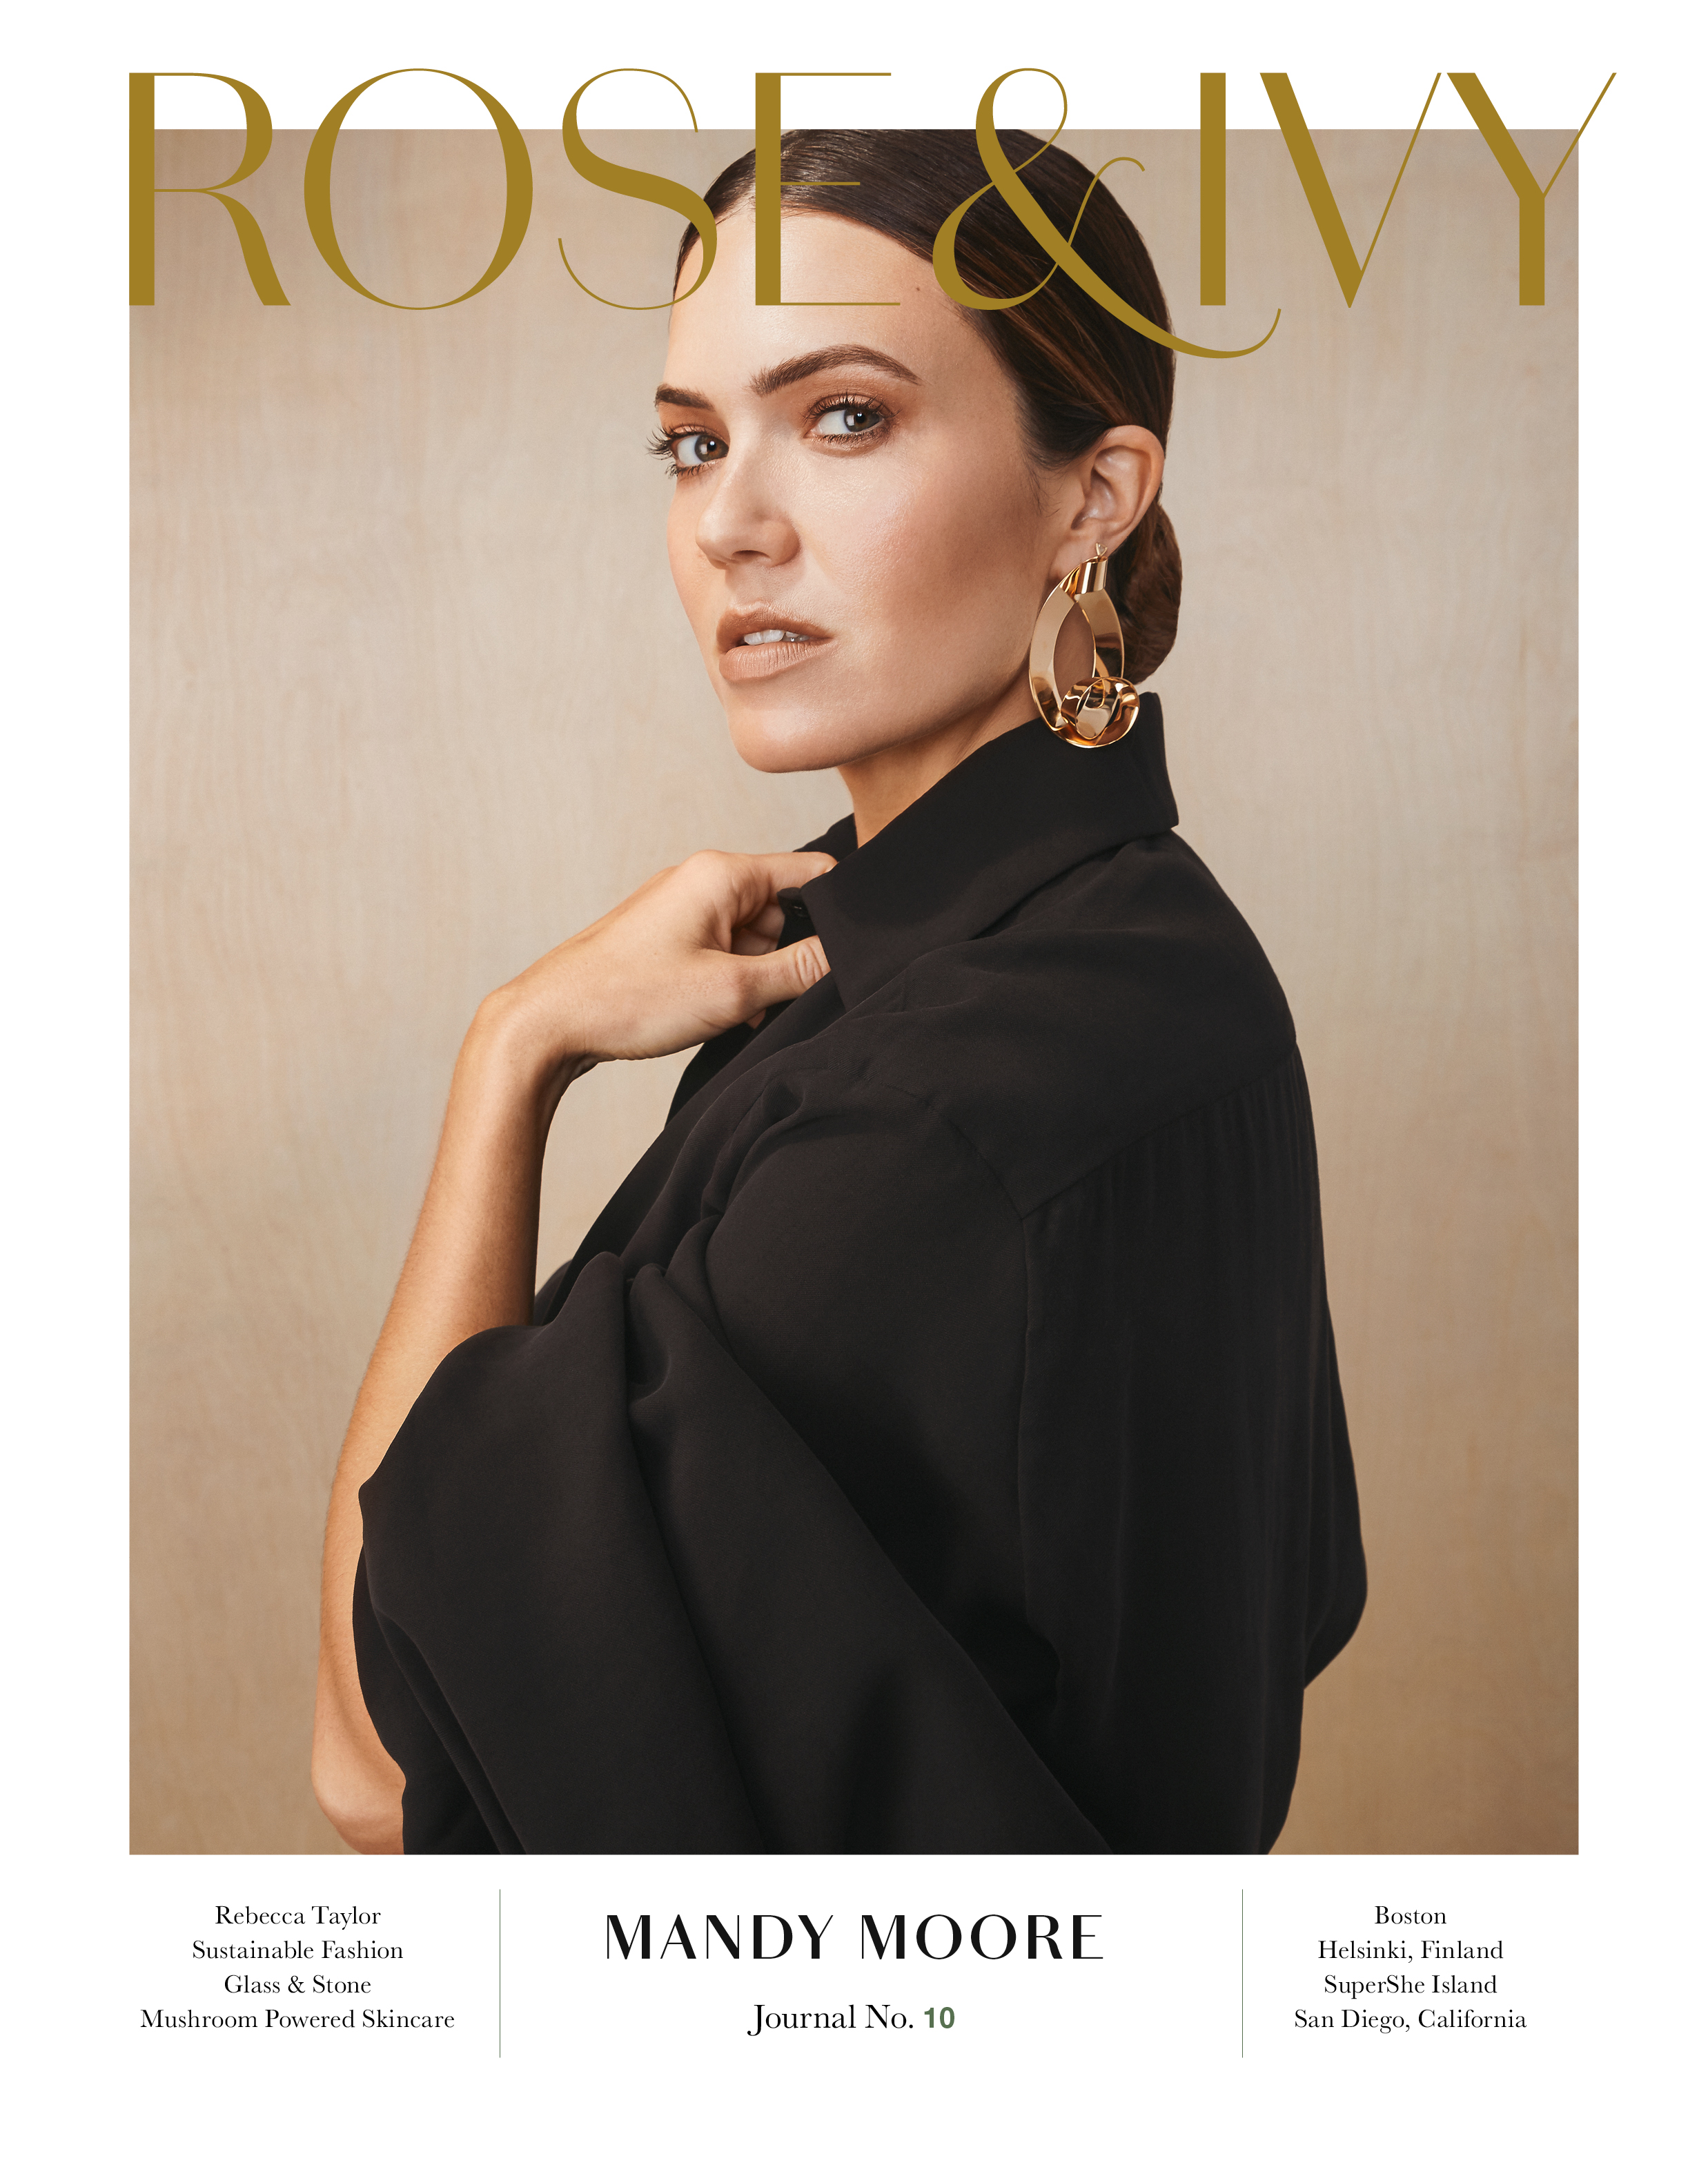 ROSE & IVY Journal Issue No.10 Starring Mandy Moore.jpg